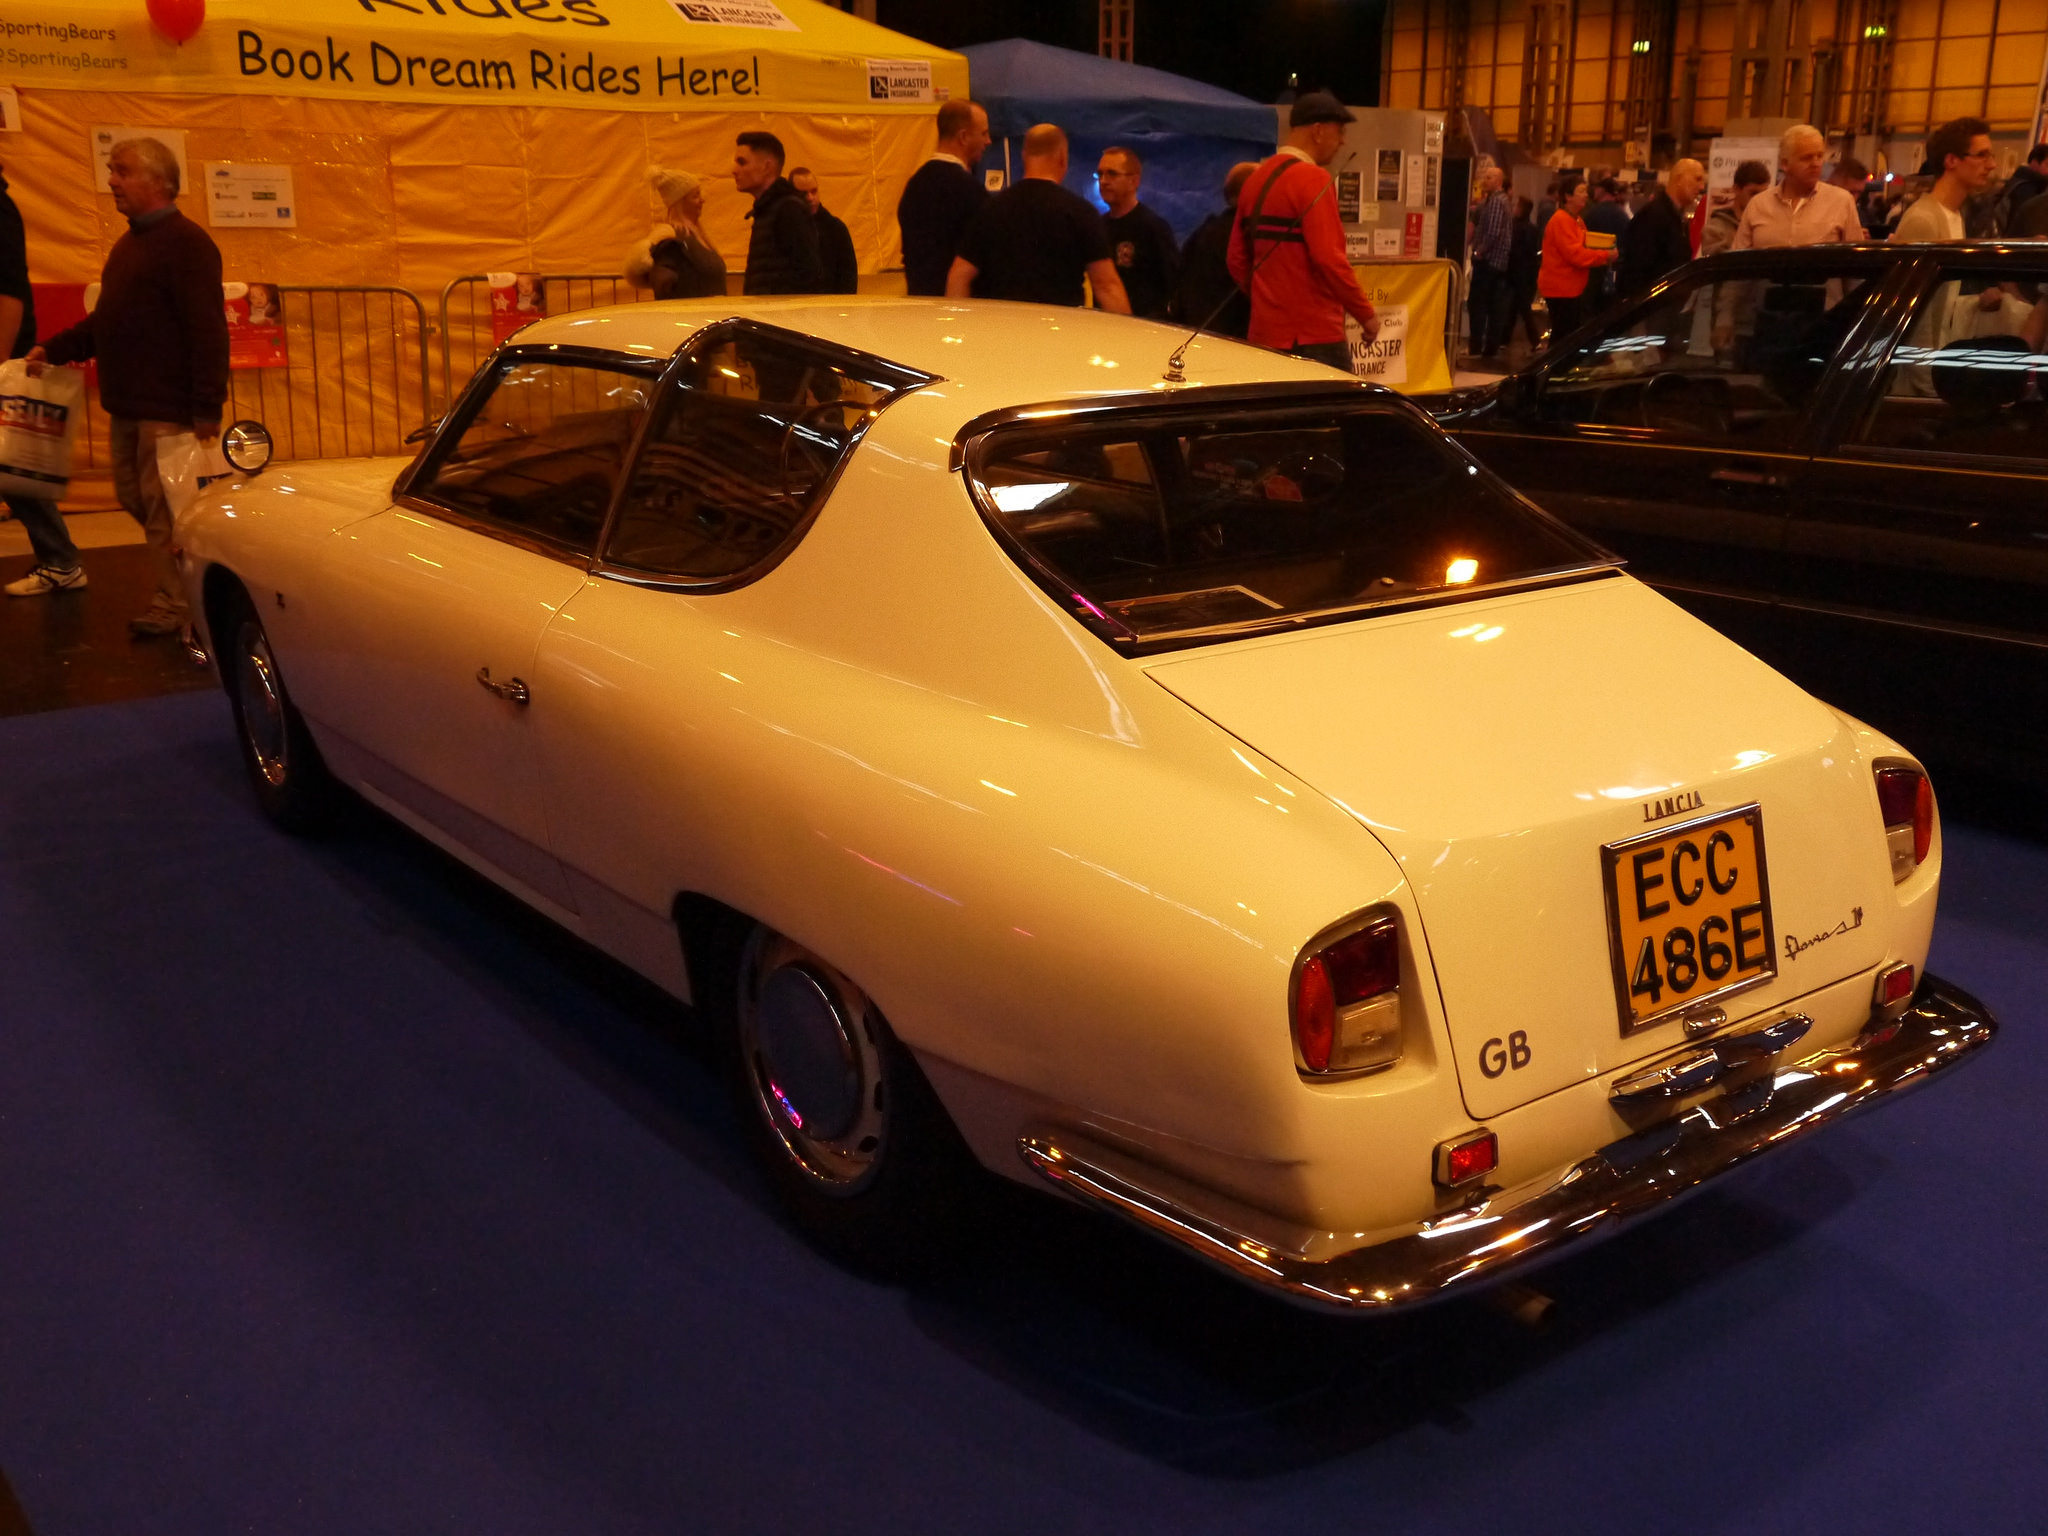 1967 lancia flavia by the transport guild on deviantart 1967 lancia flavia by the transport guild vanachro Image collections